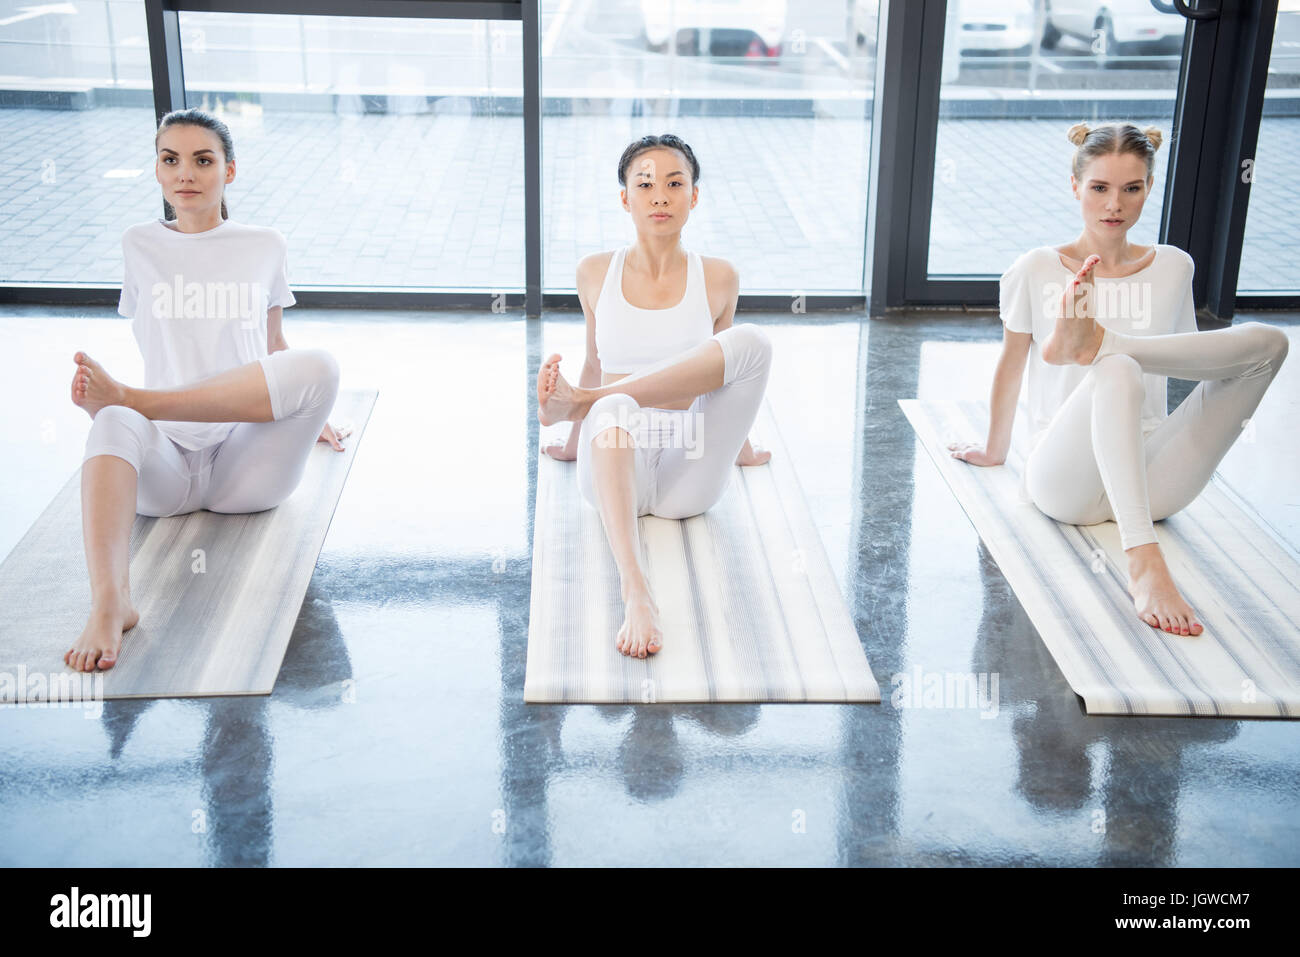 Concentrated young women performing yoga position together on yoga mats - Stock Image